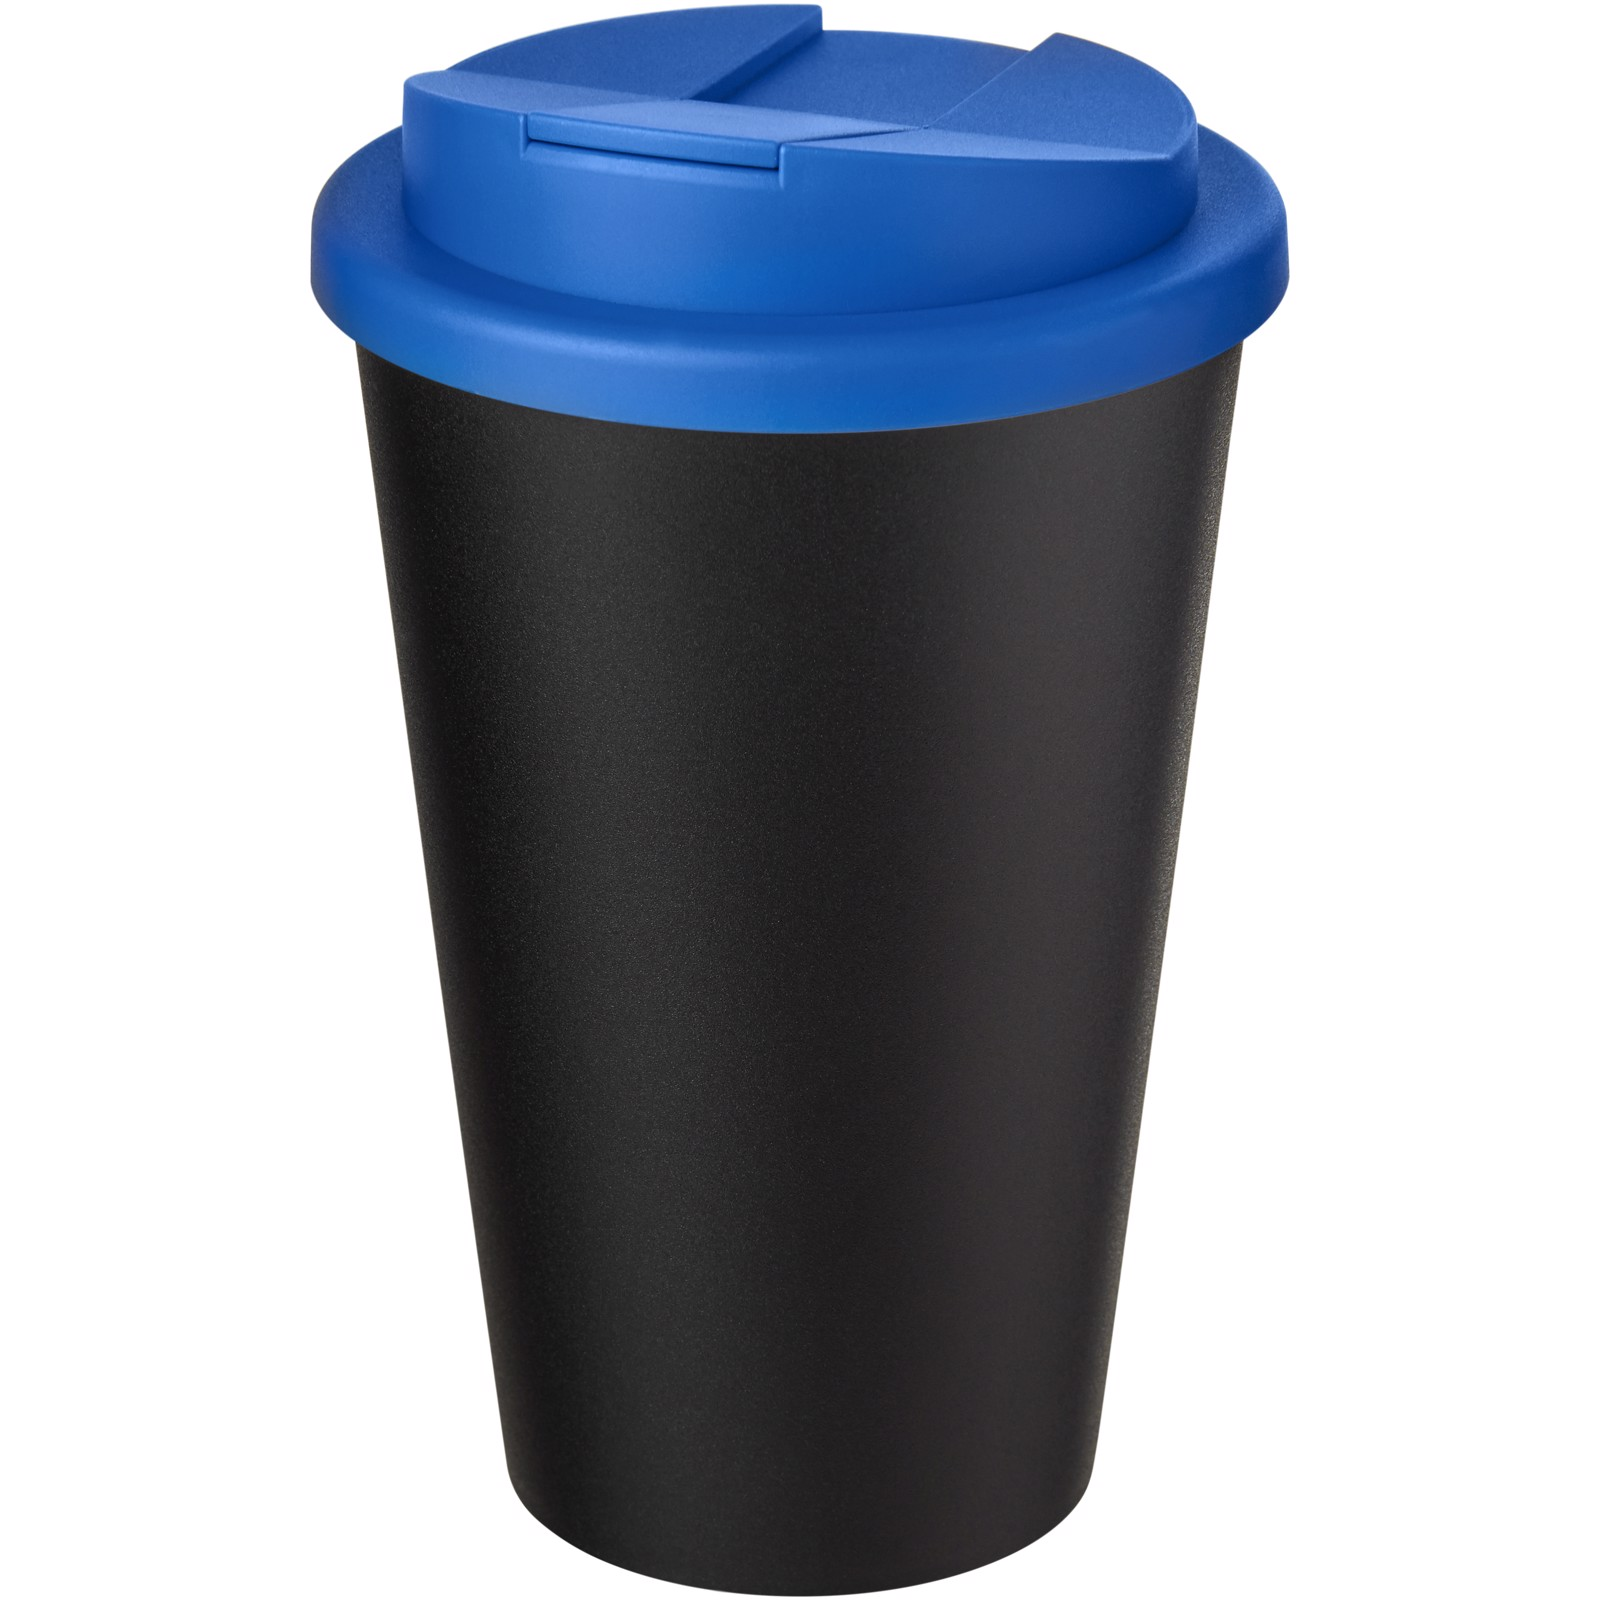 Americano® Eco 350 ml recycled tumbler with spill-proof lid - Mid blue / Solid black